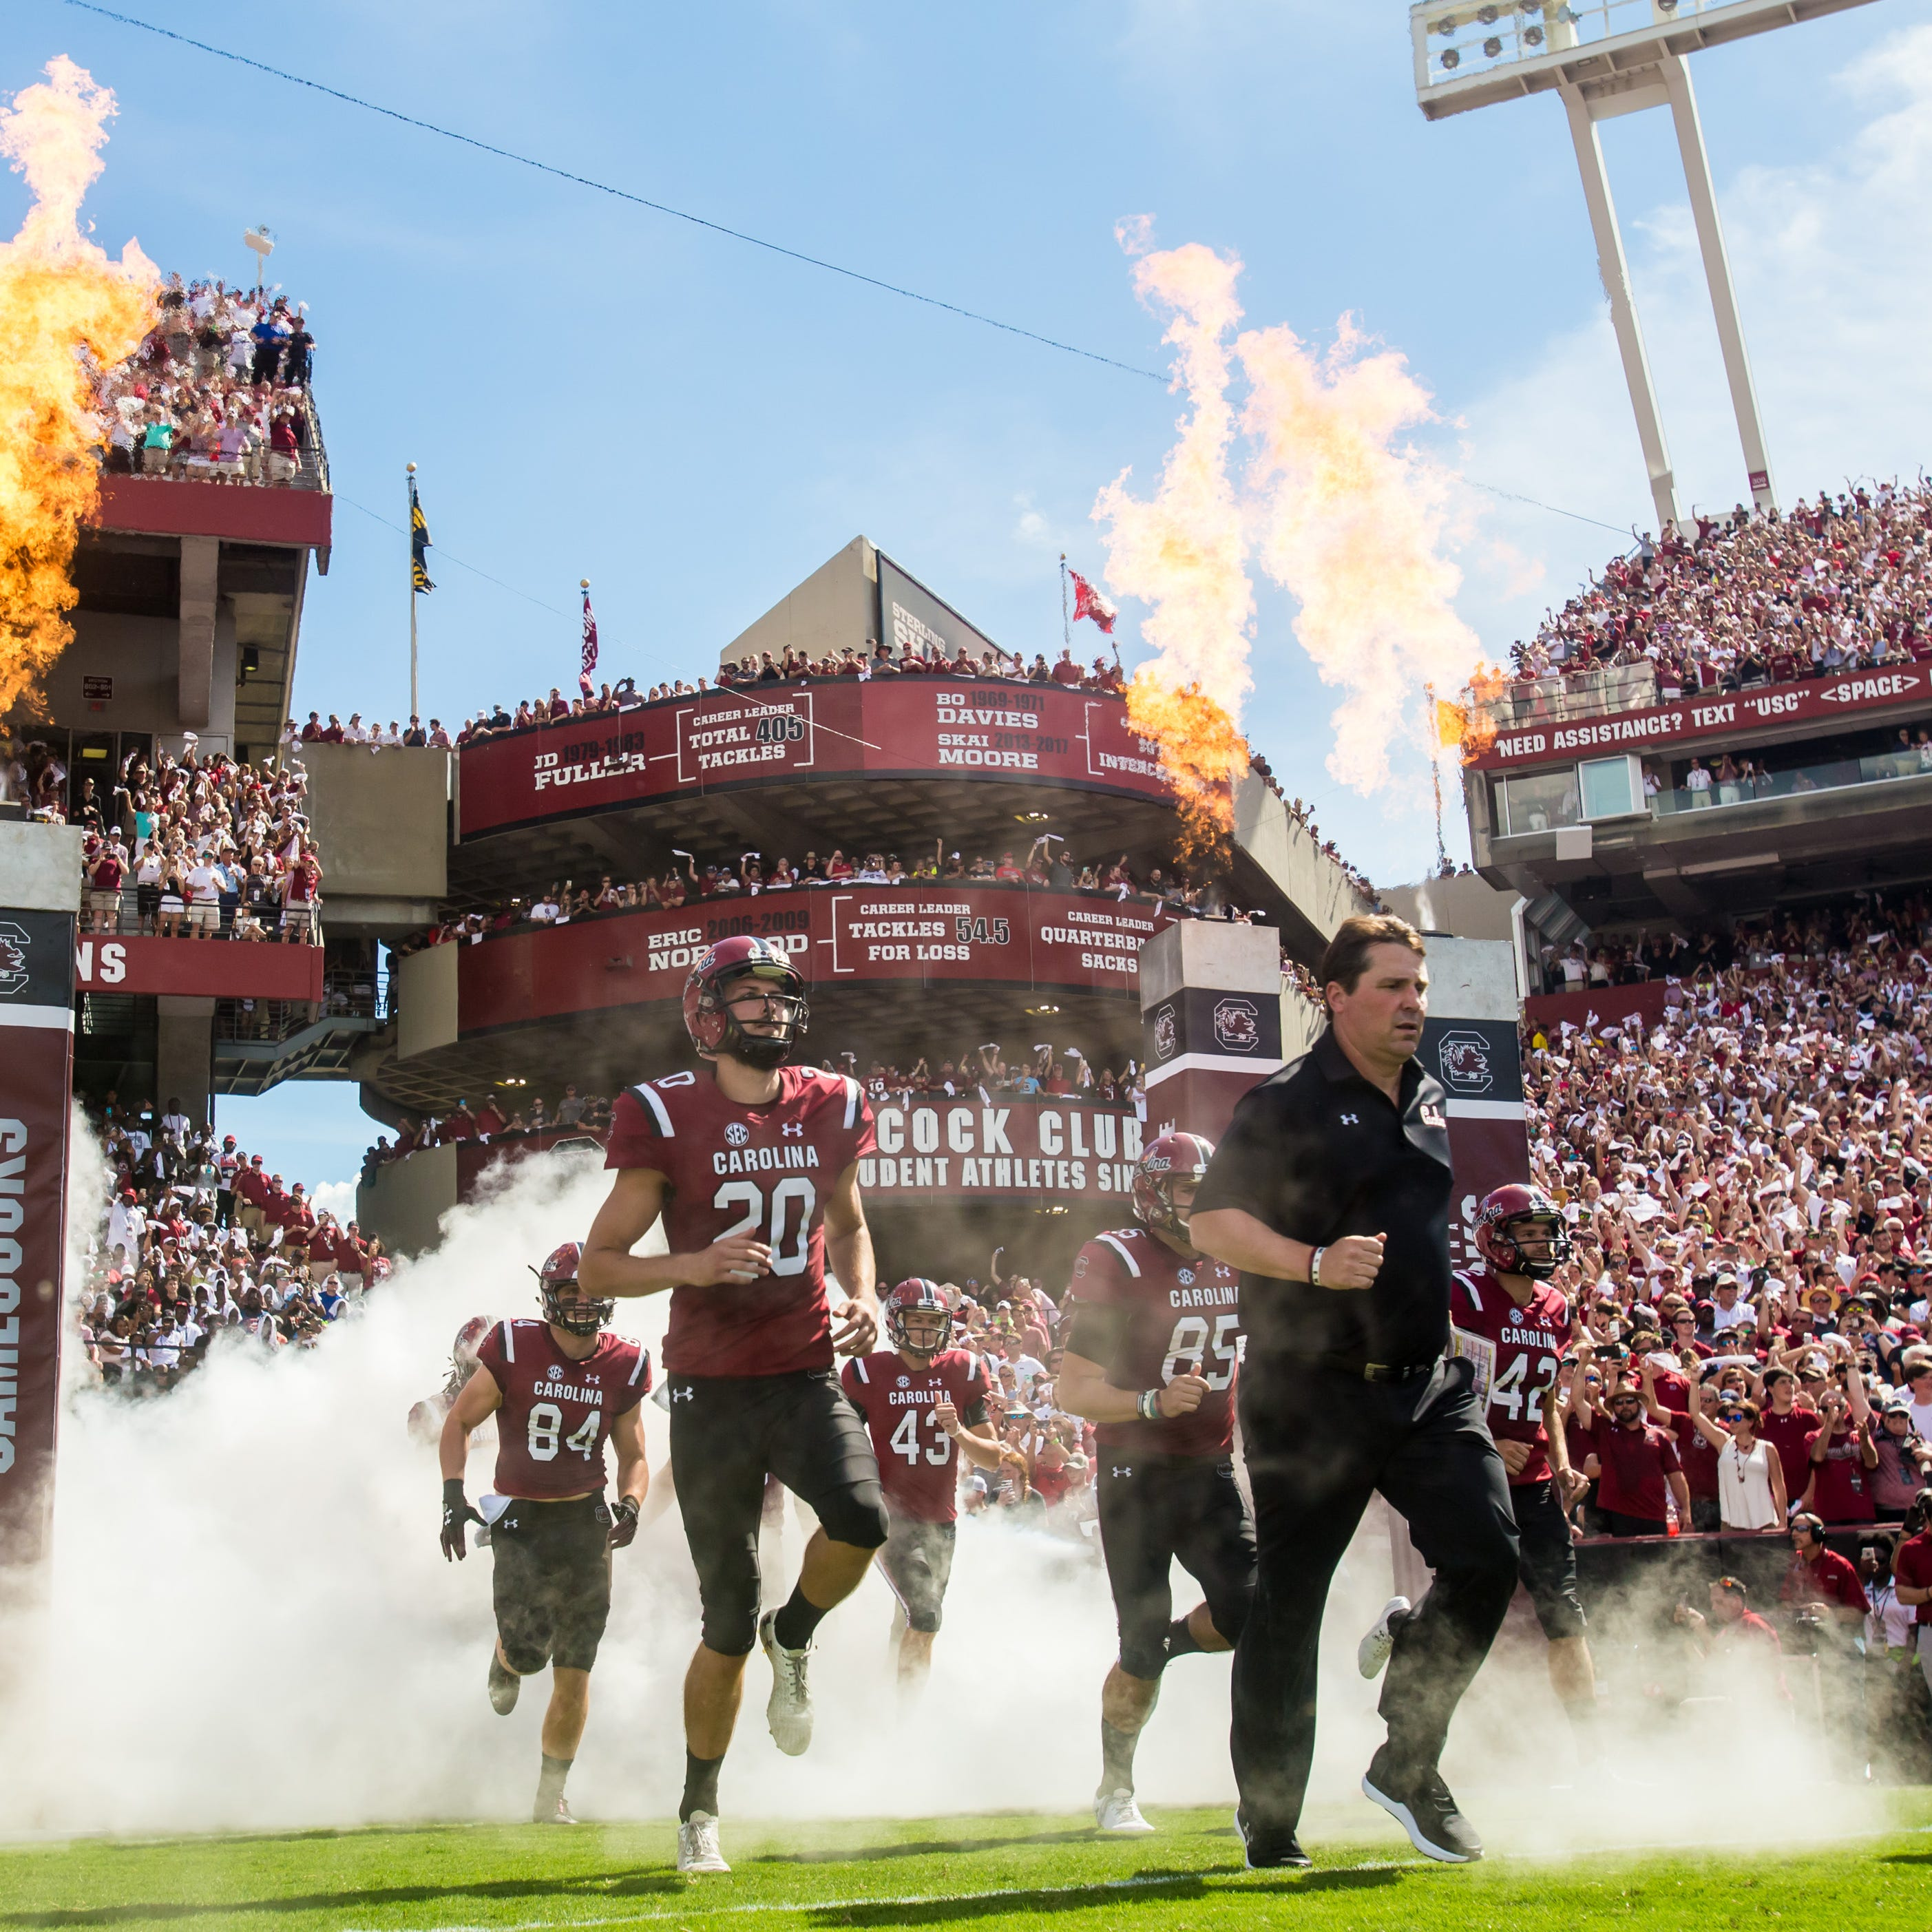 USC, Clemson could earn millions on naming rights for Williams-Brice, Memorial Stadium